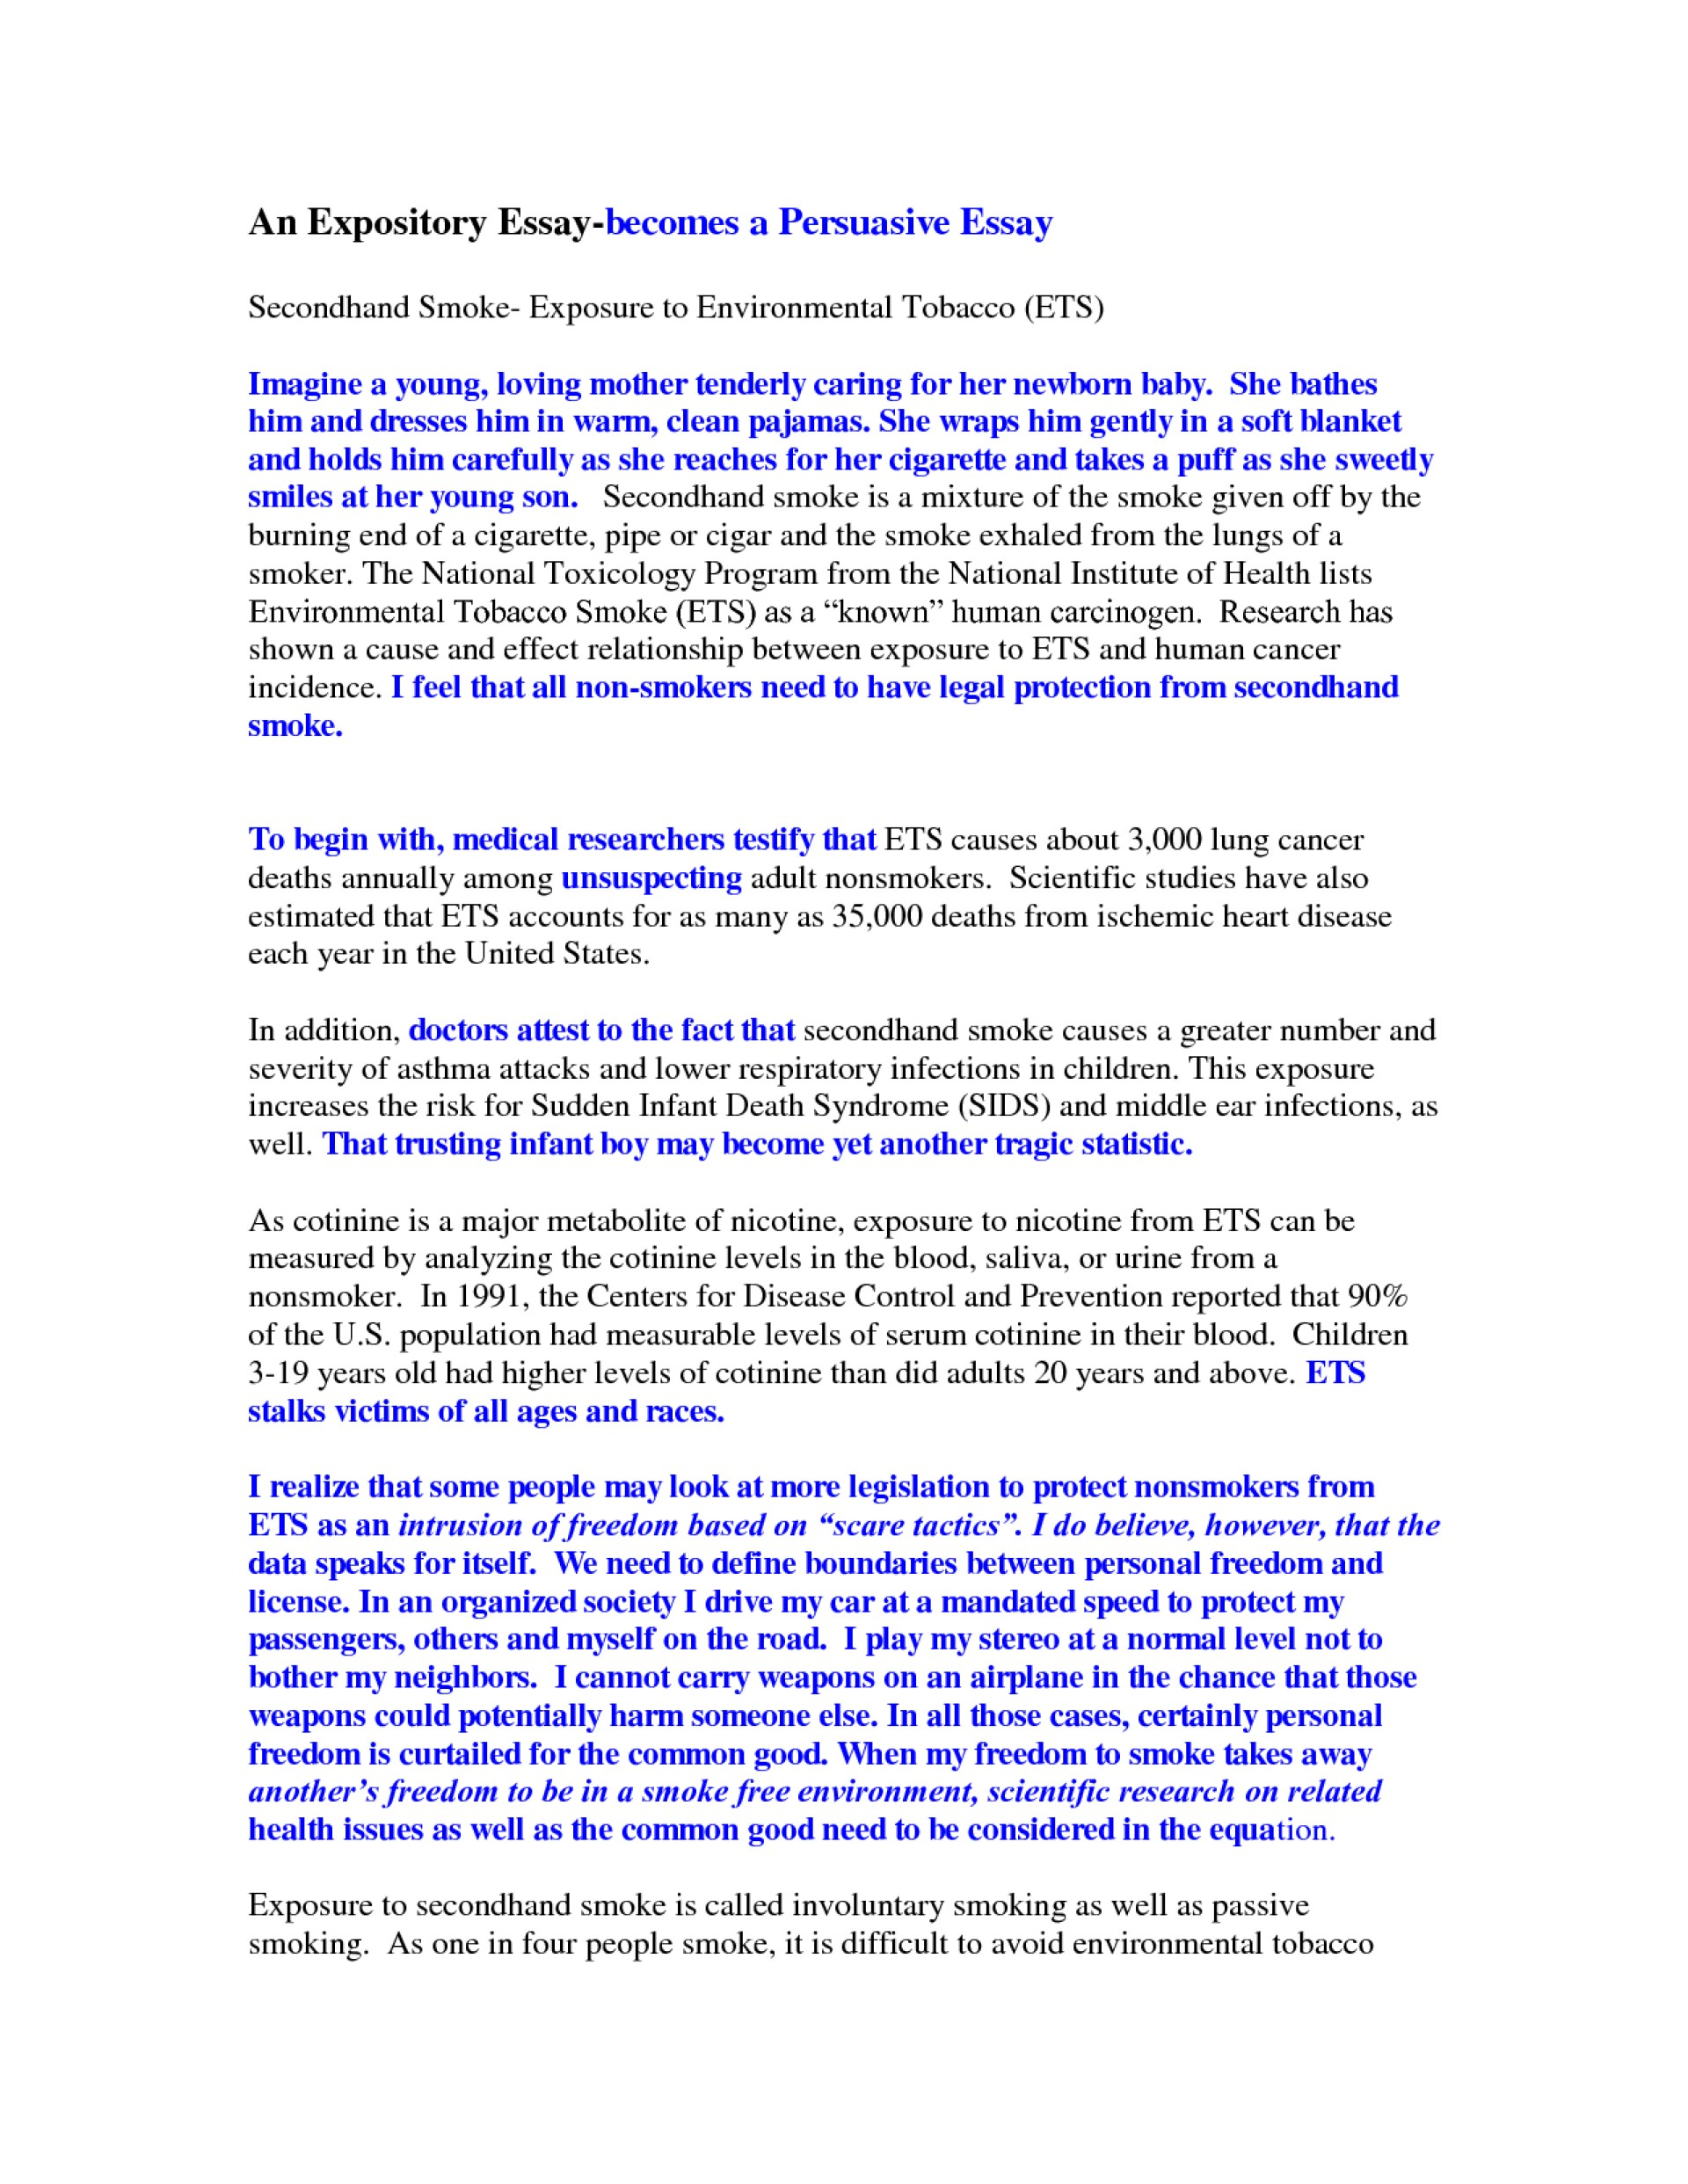 005 Whats An Expository Essay Fpucirorgs Phenomenal What Is Powerpoint What's Example Does Consist Of 1920